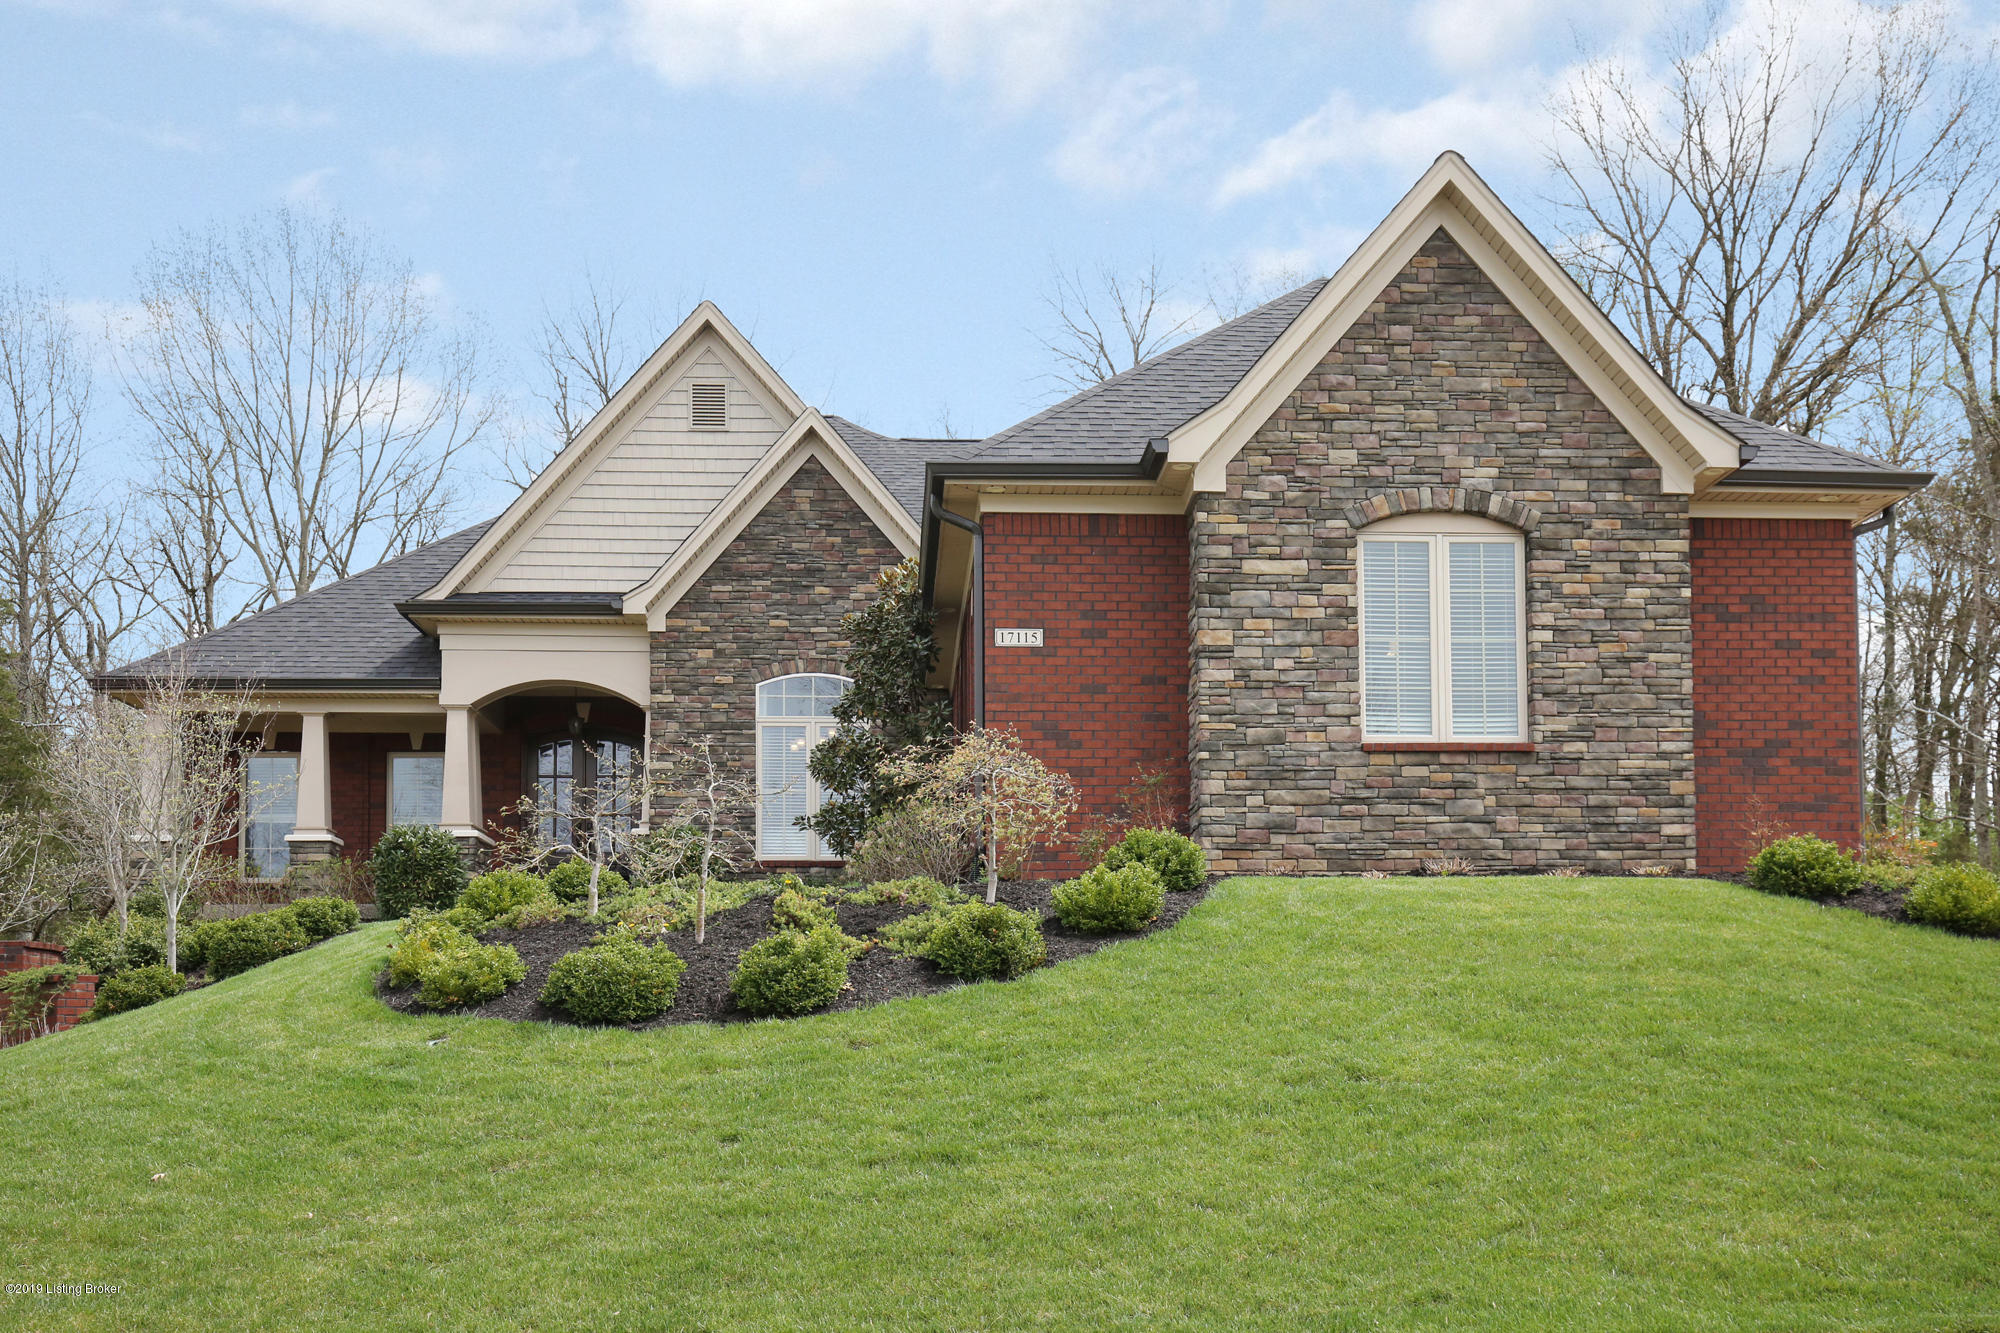 17115 Shakes Creek Dr, Fisherville, Kentucky 40023, 4 Bedrooms Bedrooms, 9 Rooms Rooms,4 BathroomsBathrooms,Residential,For Sale,Shakes Creek,1529363